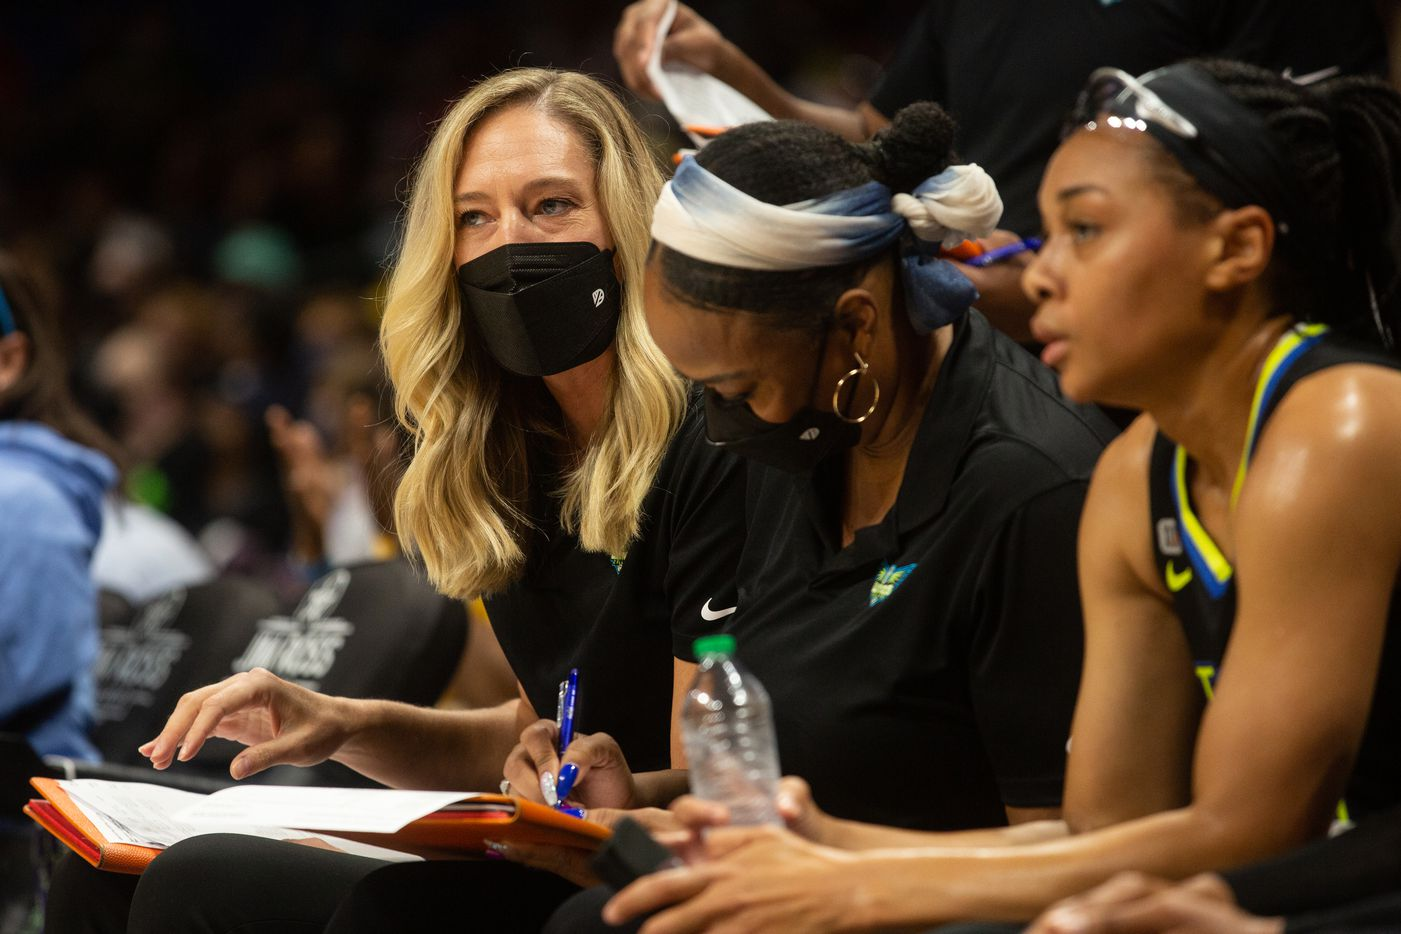 Dallas Wings assistant coach Kelly Raimon looks onto the court during their game against New York Liberty at College Park Center in Arlington, TX on September 11, 2021.  (Shelby Tauber/Special Contributor)